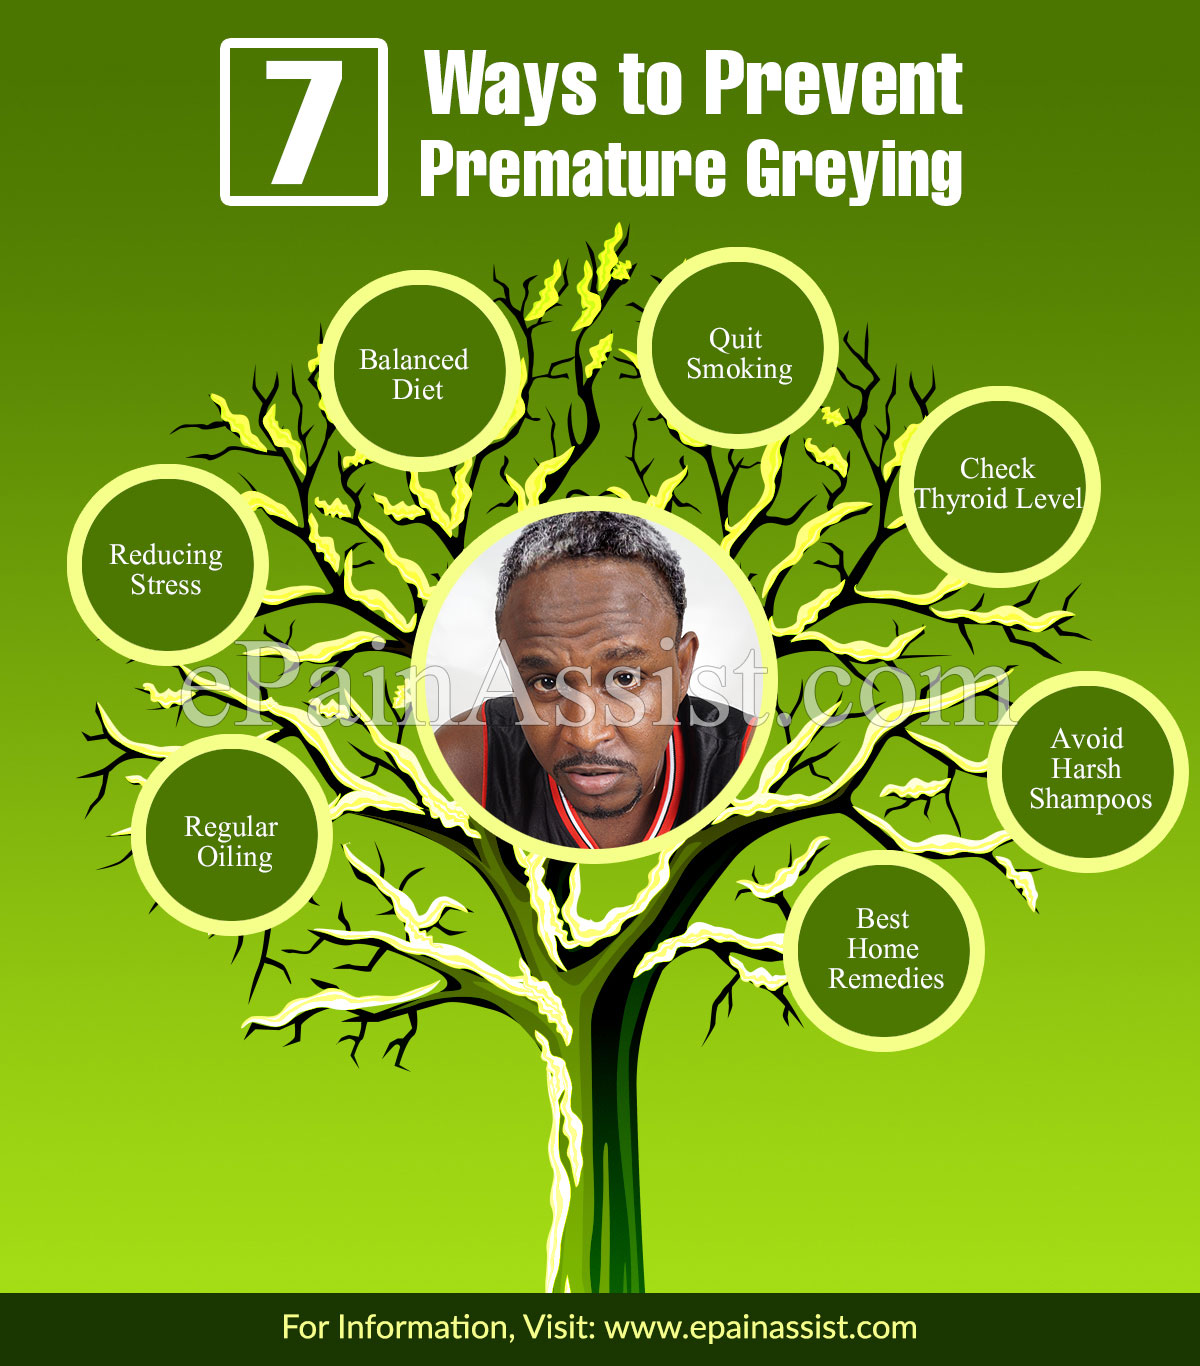 7 Ways to Prevent Premature Greying